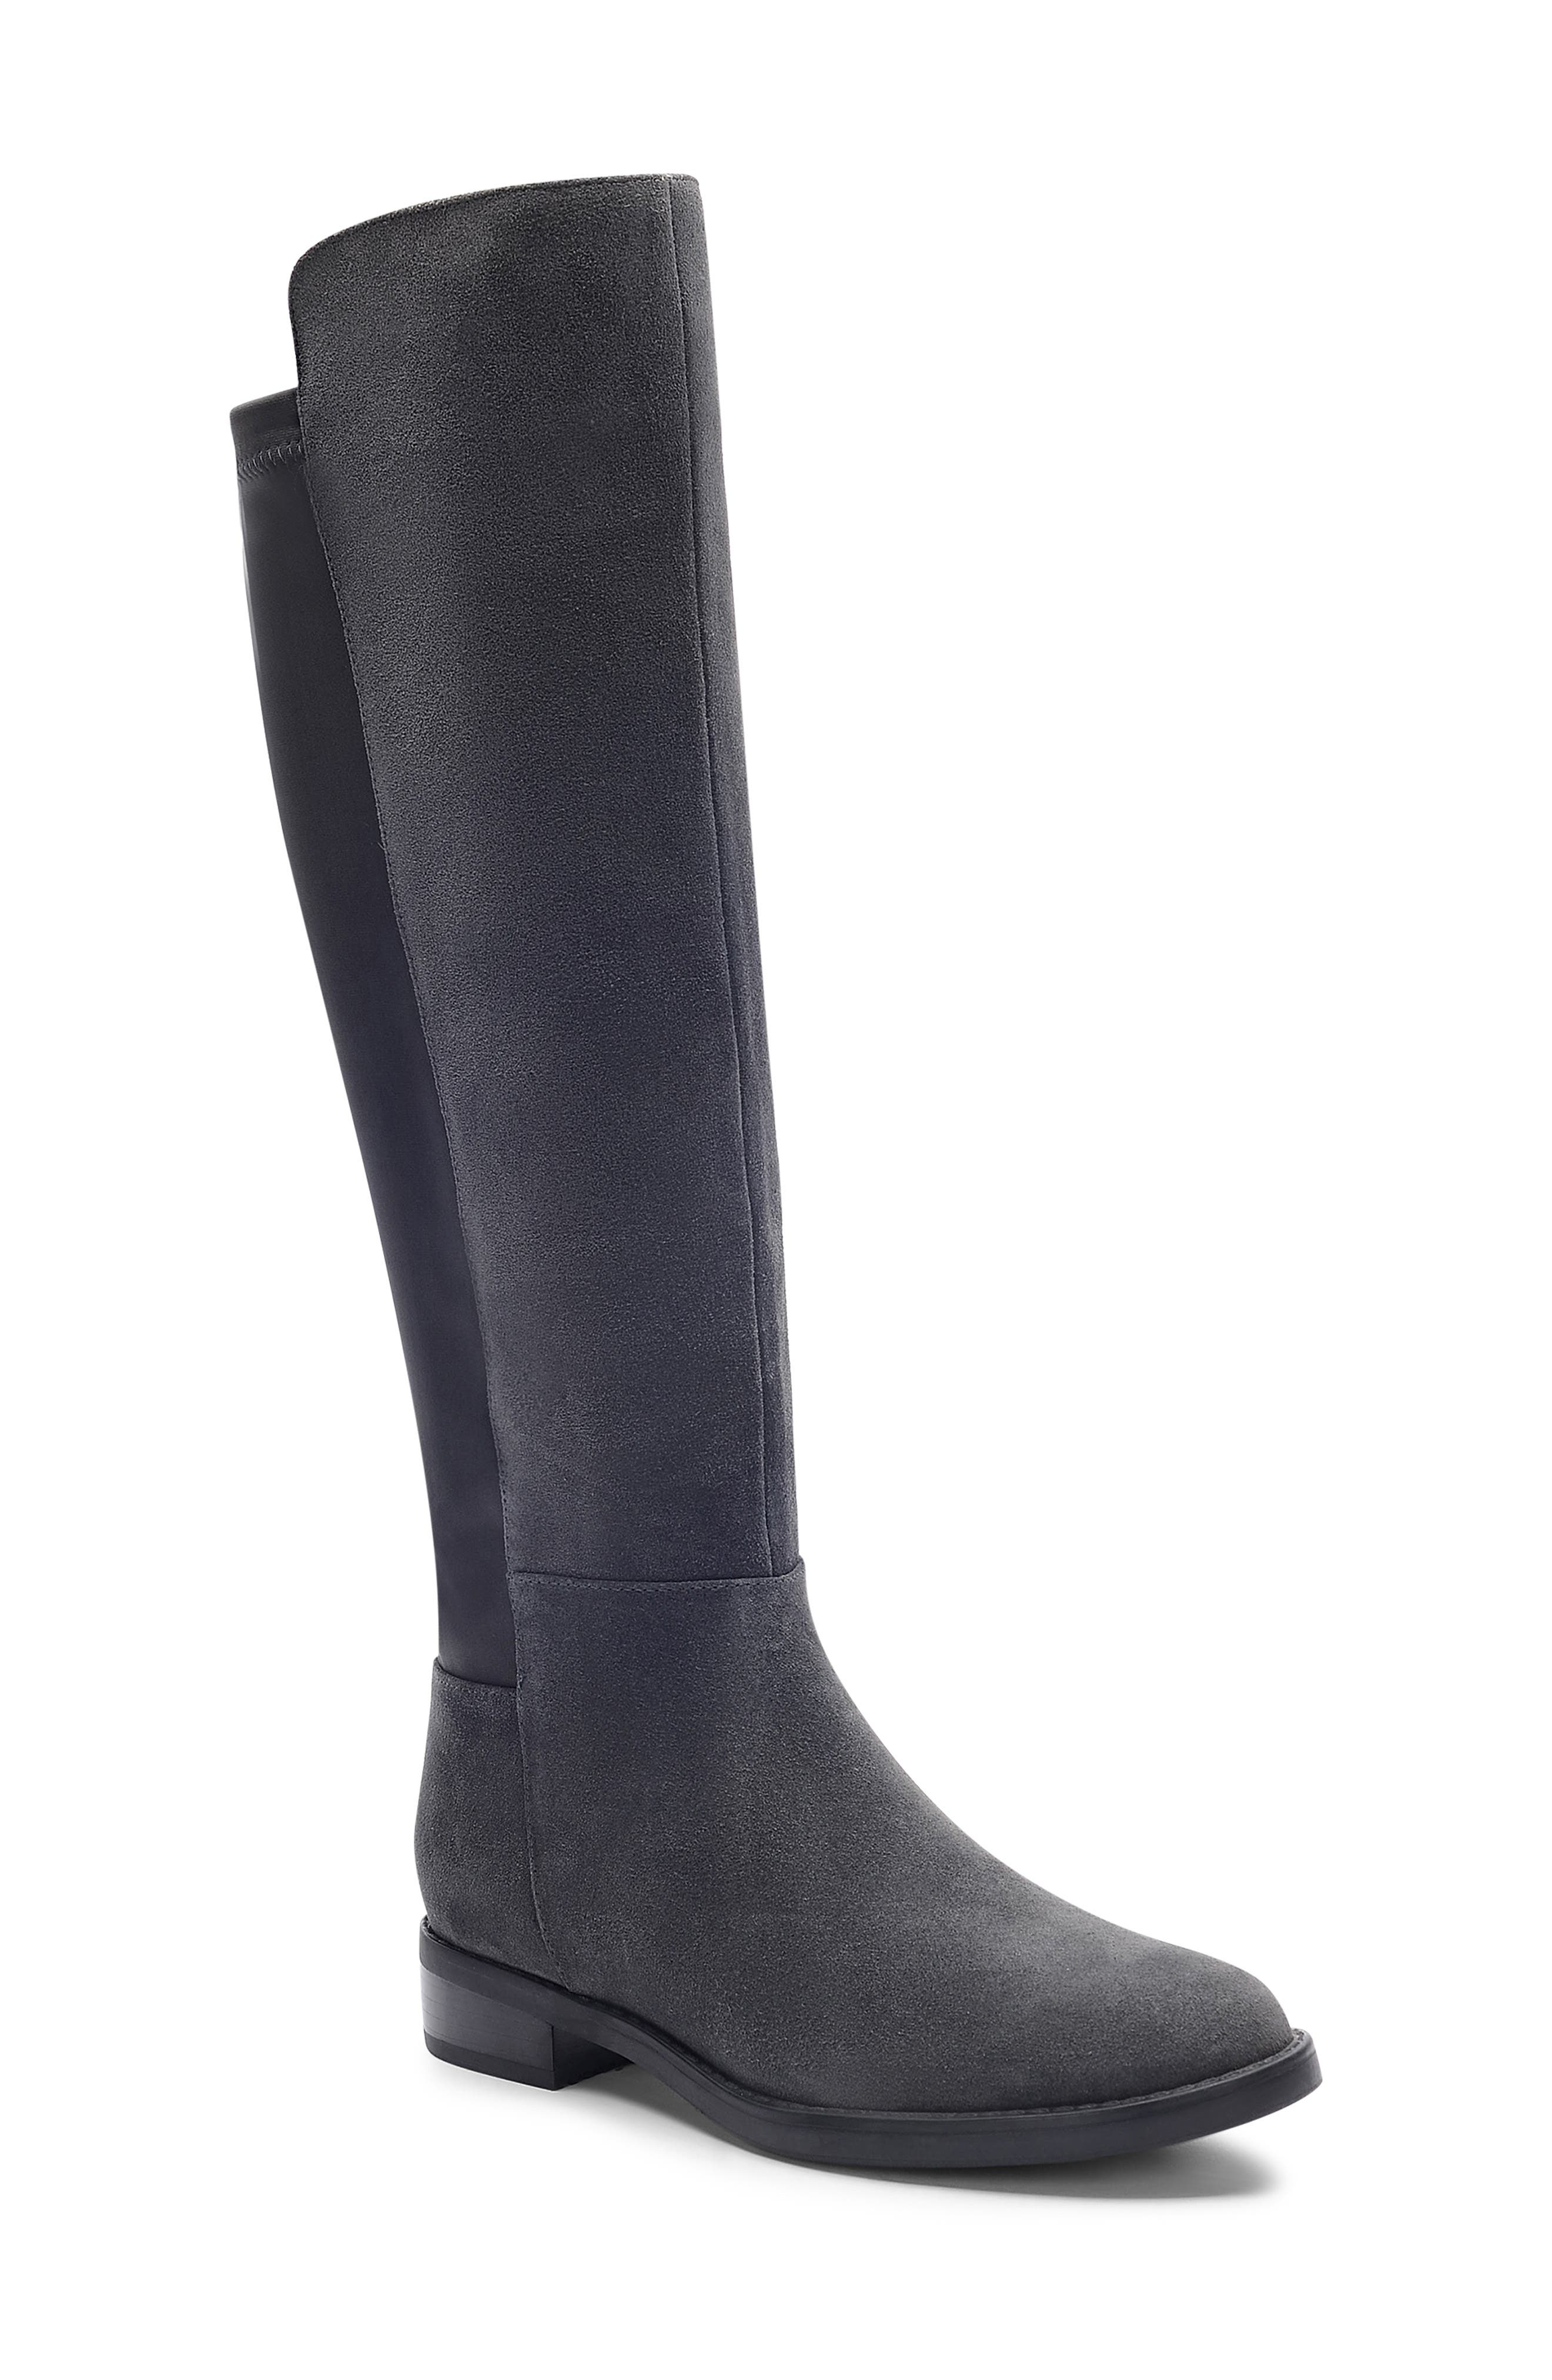 BLONDO Ellie Waterproof Knee High Riding Boot, Main, color, DARK GREY SUEDE